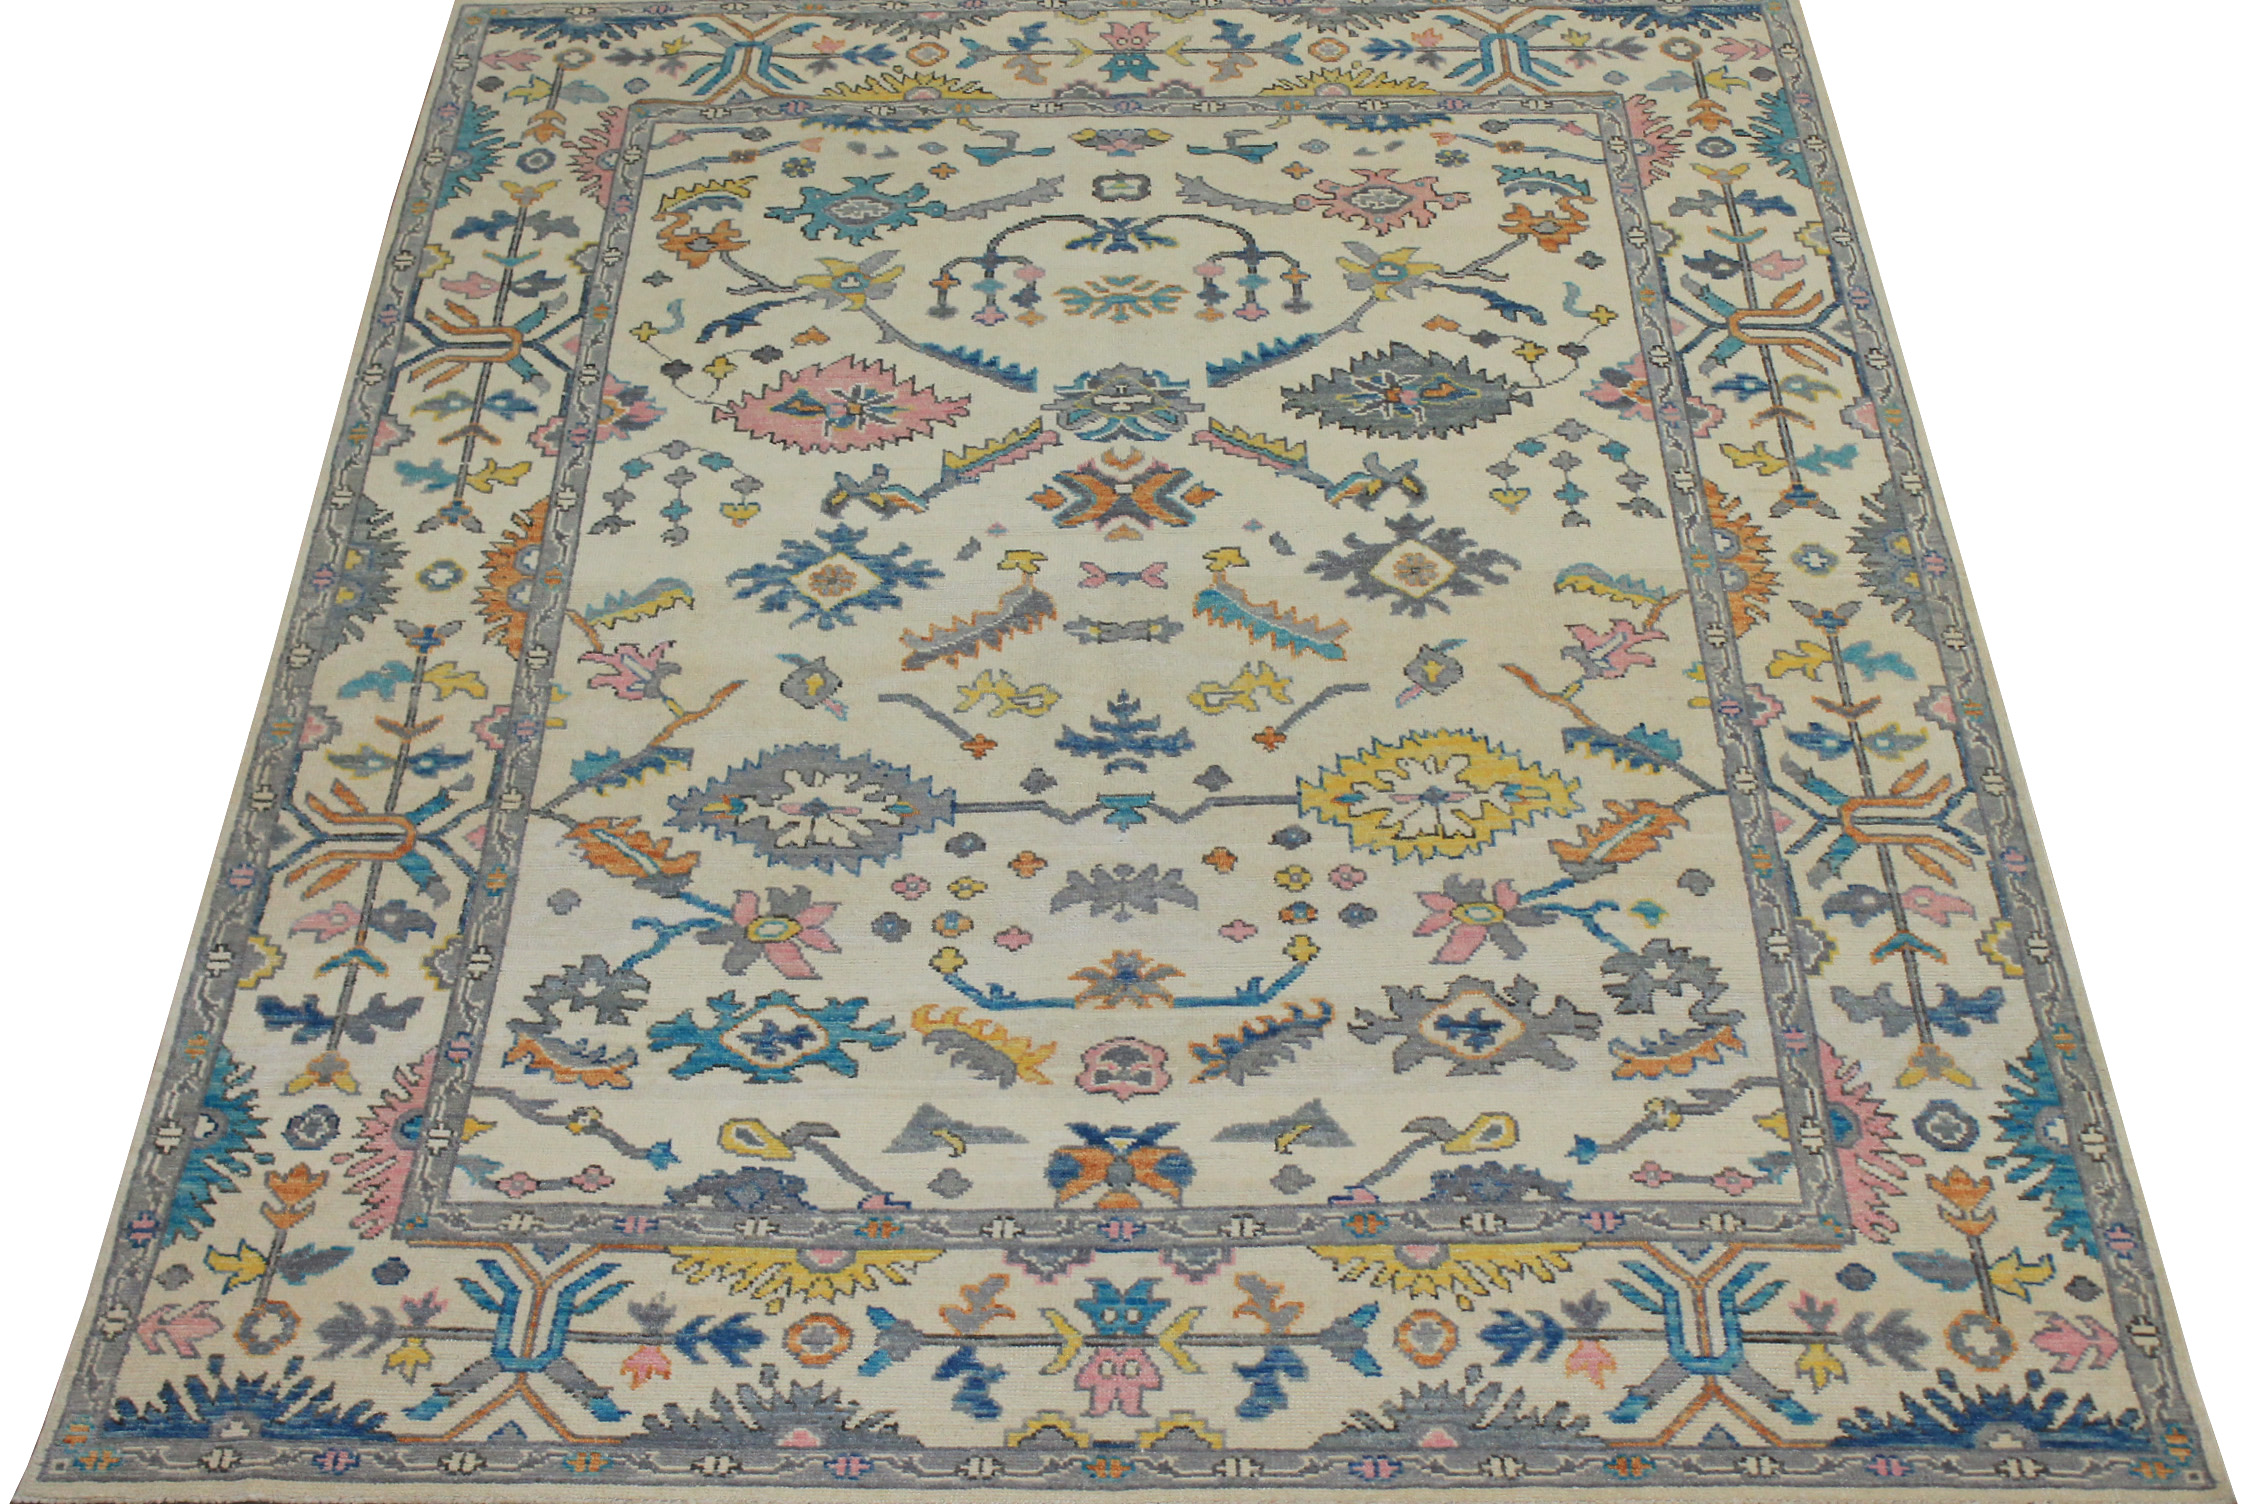 8x10 Oushak Hand Knotted Wool Area Rug - MR024408